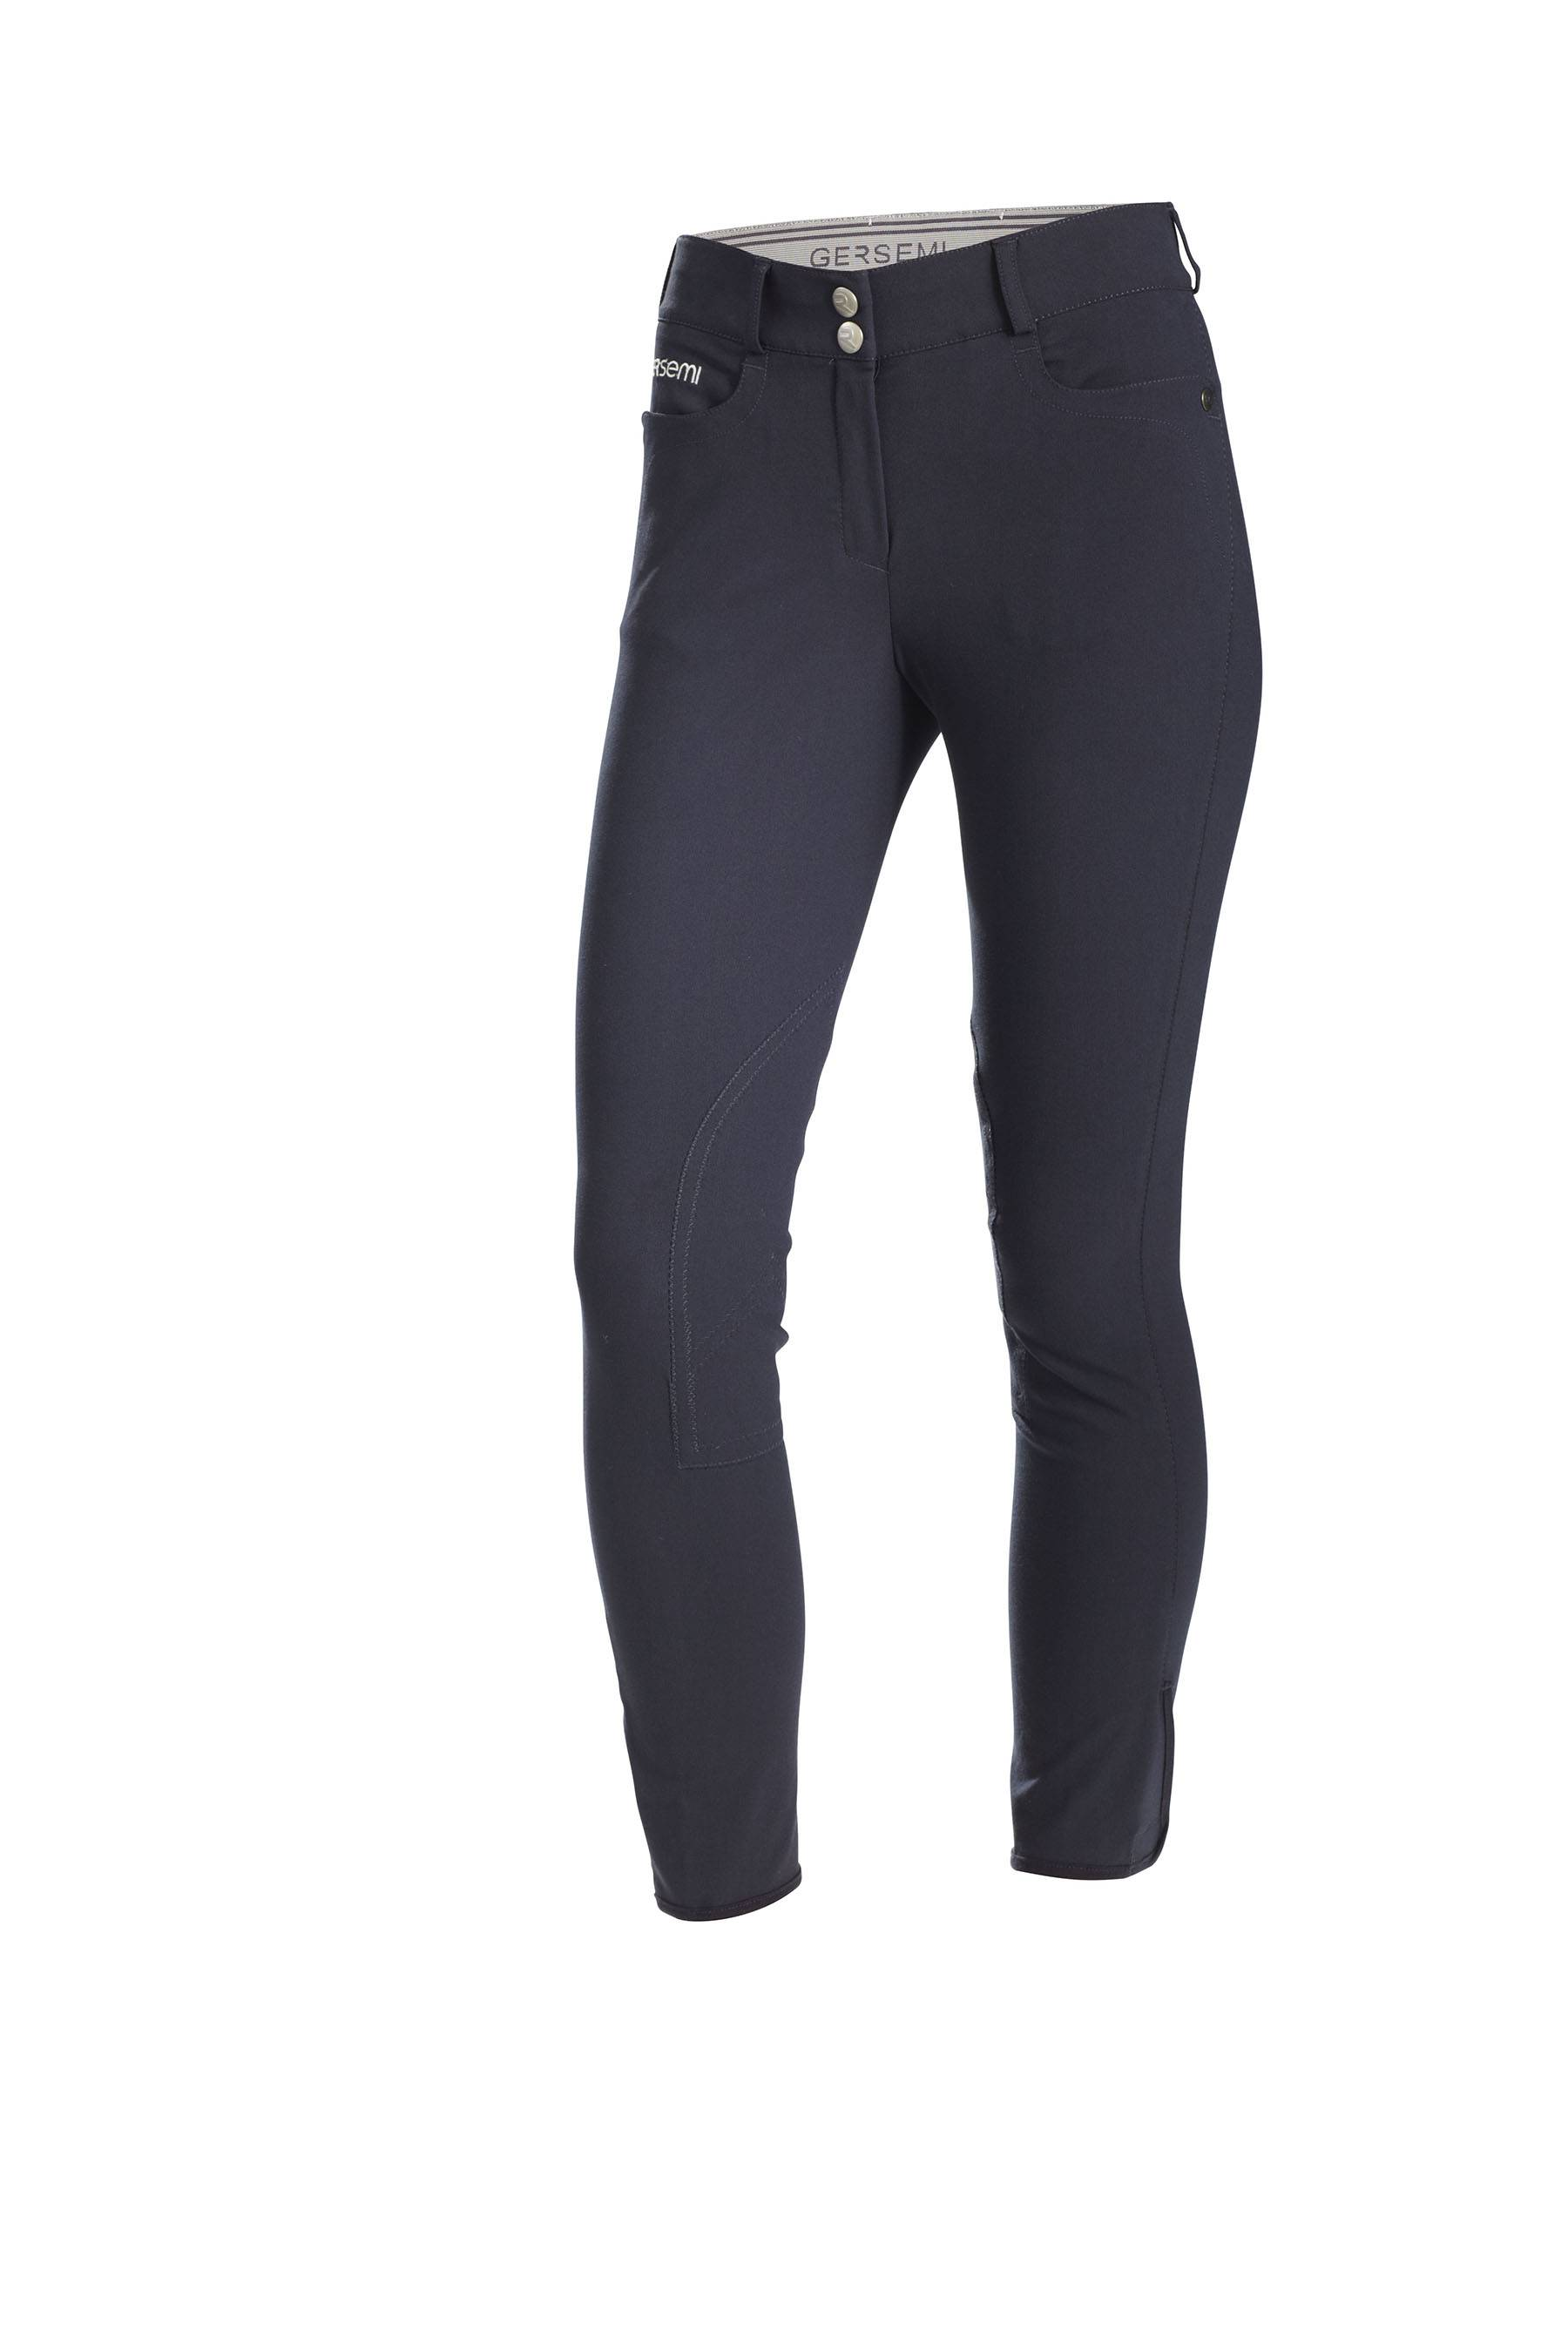 Gersemi Sigyn Knee Patch Breeches - Ladies - Navy